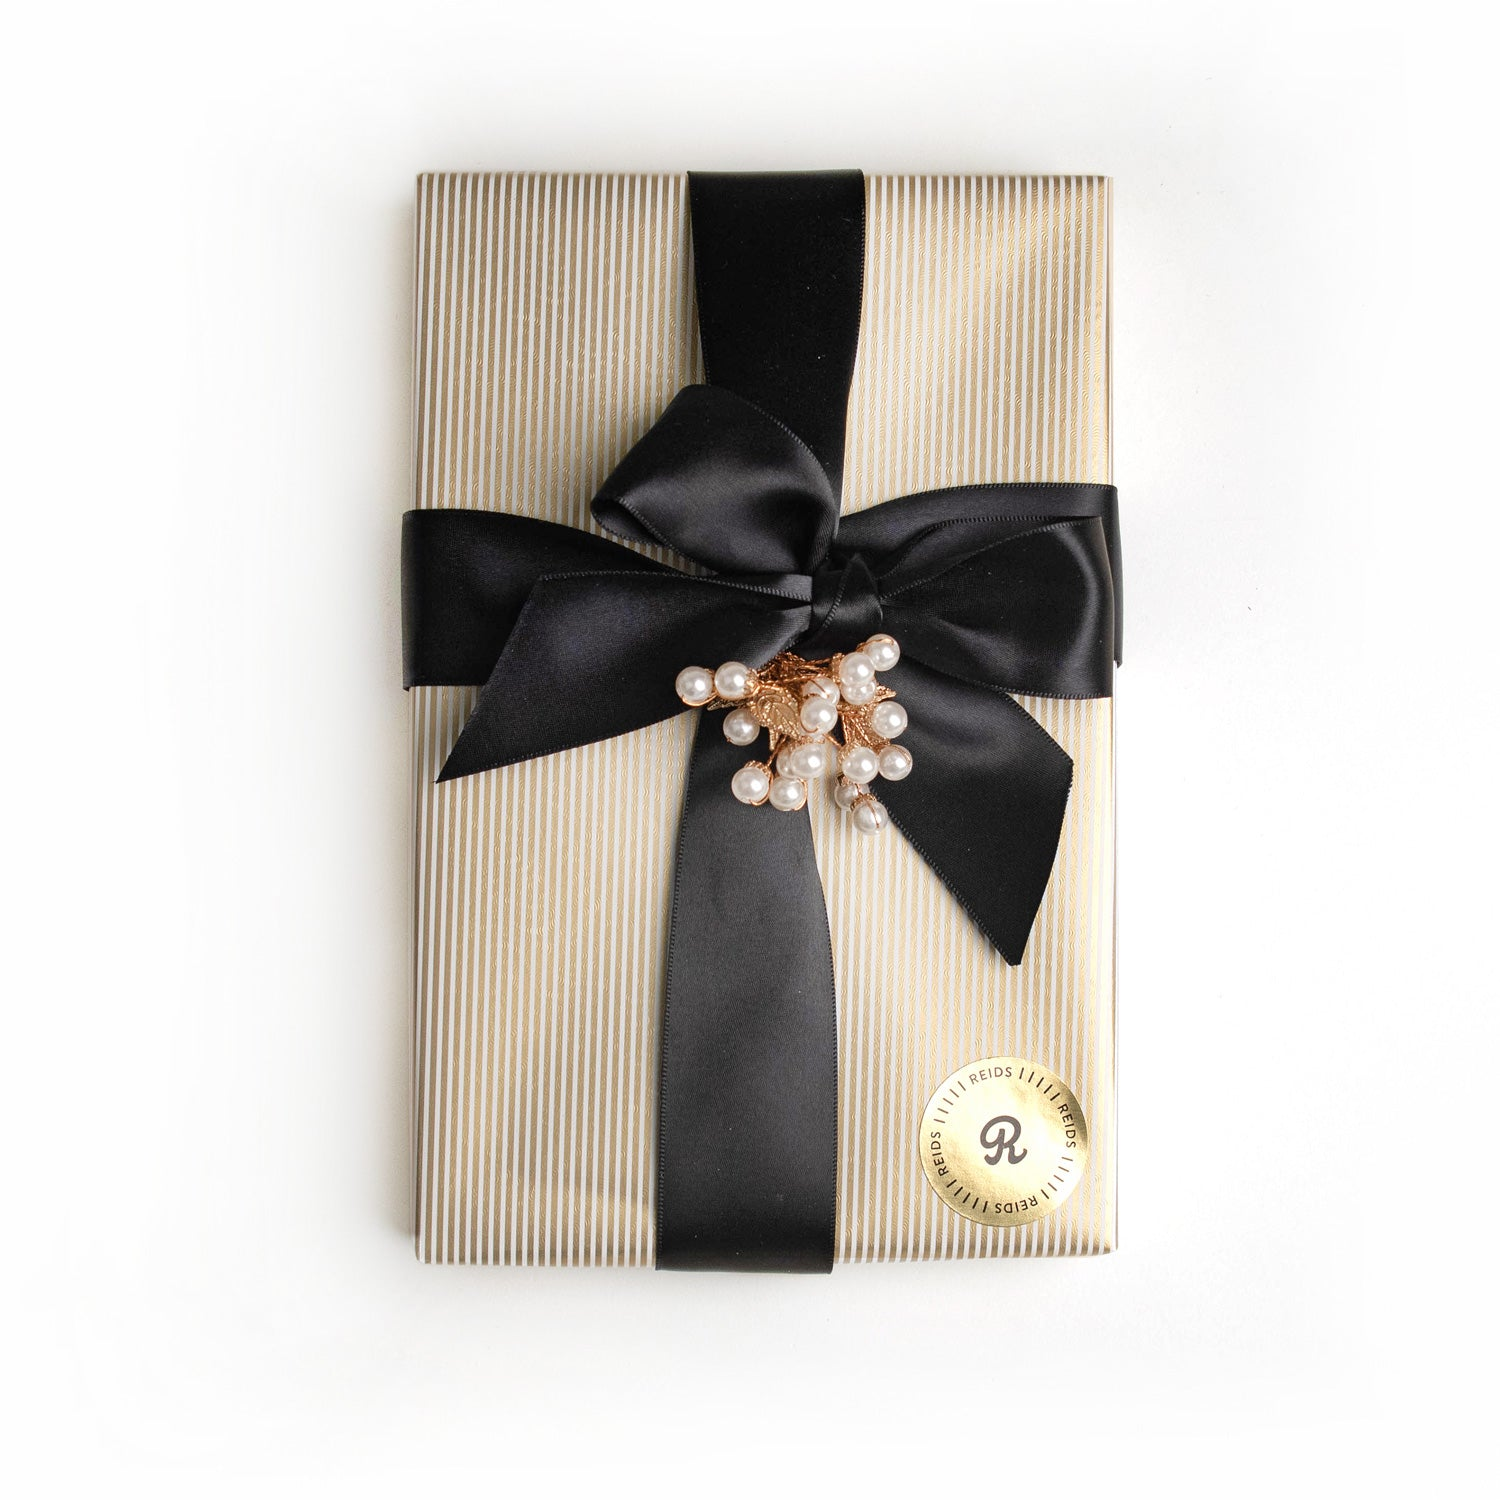 1 lb fancy wrapped box. Gold, and white pin-stripped wrapping paper. Tied with a black satin ribbon and white decorative piece